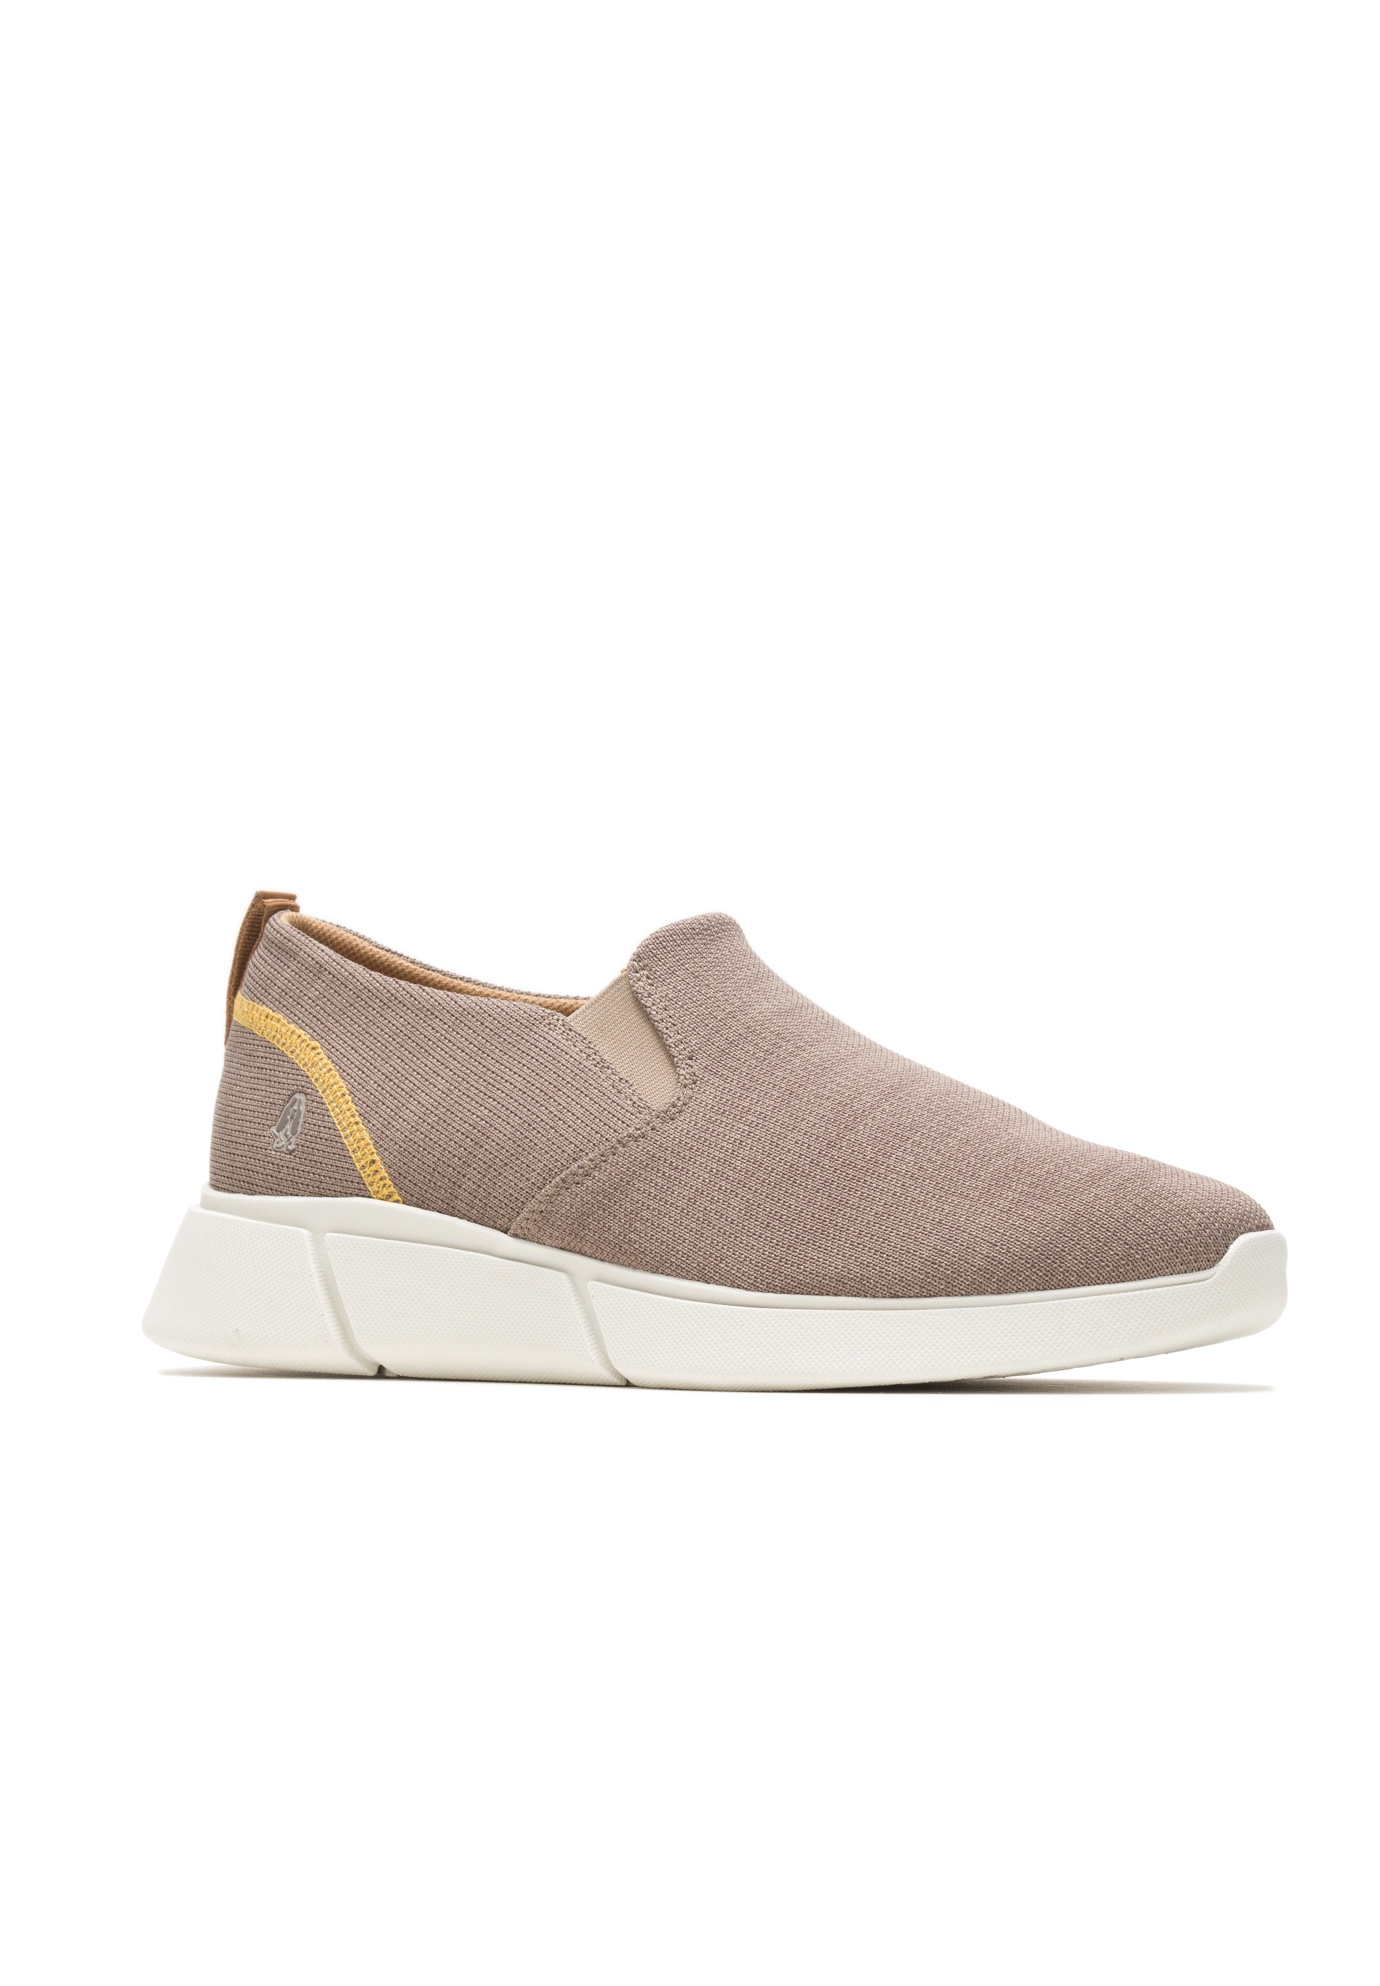 Hush Puppies® Cooper Slip On Sneakers,